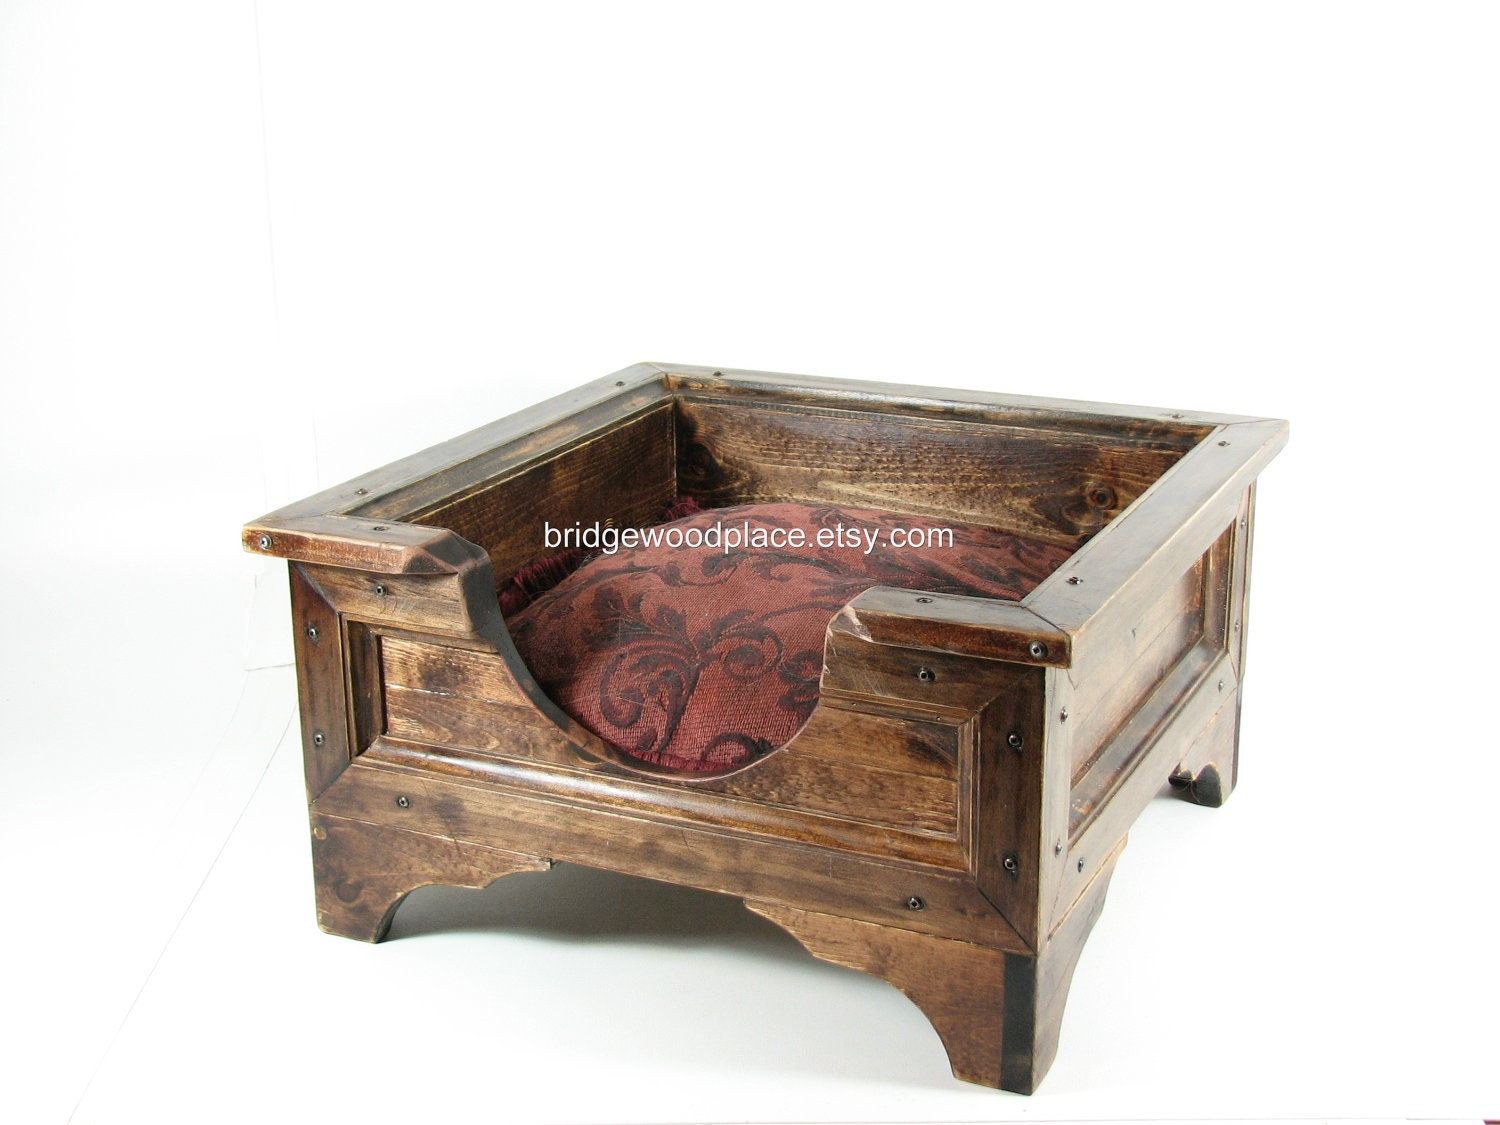 Pet bed furniture cat bed small dog bed wood crate wooden box Wooden crates furniture